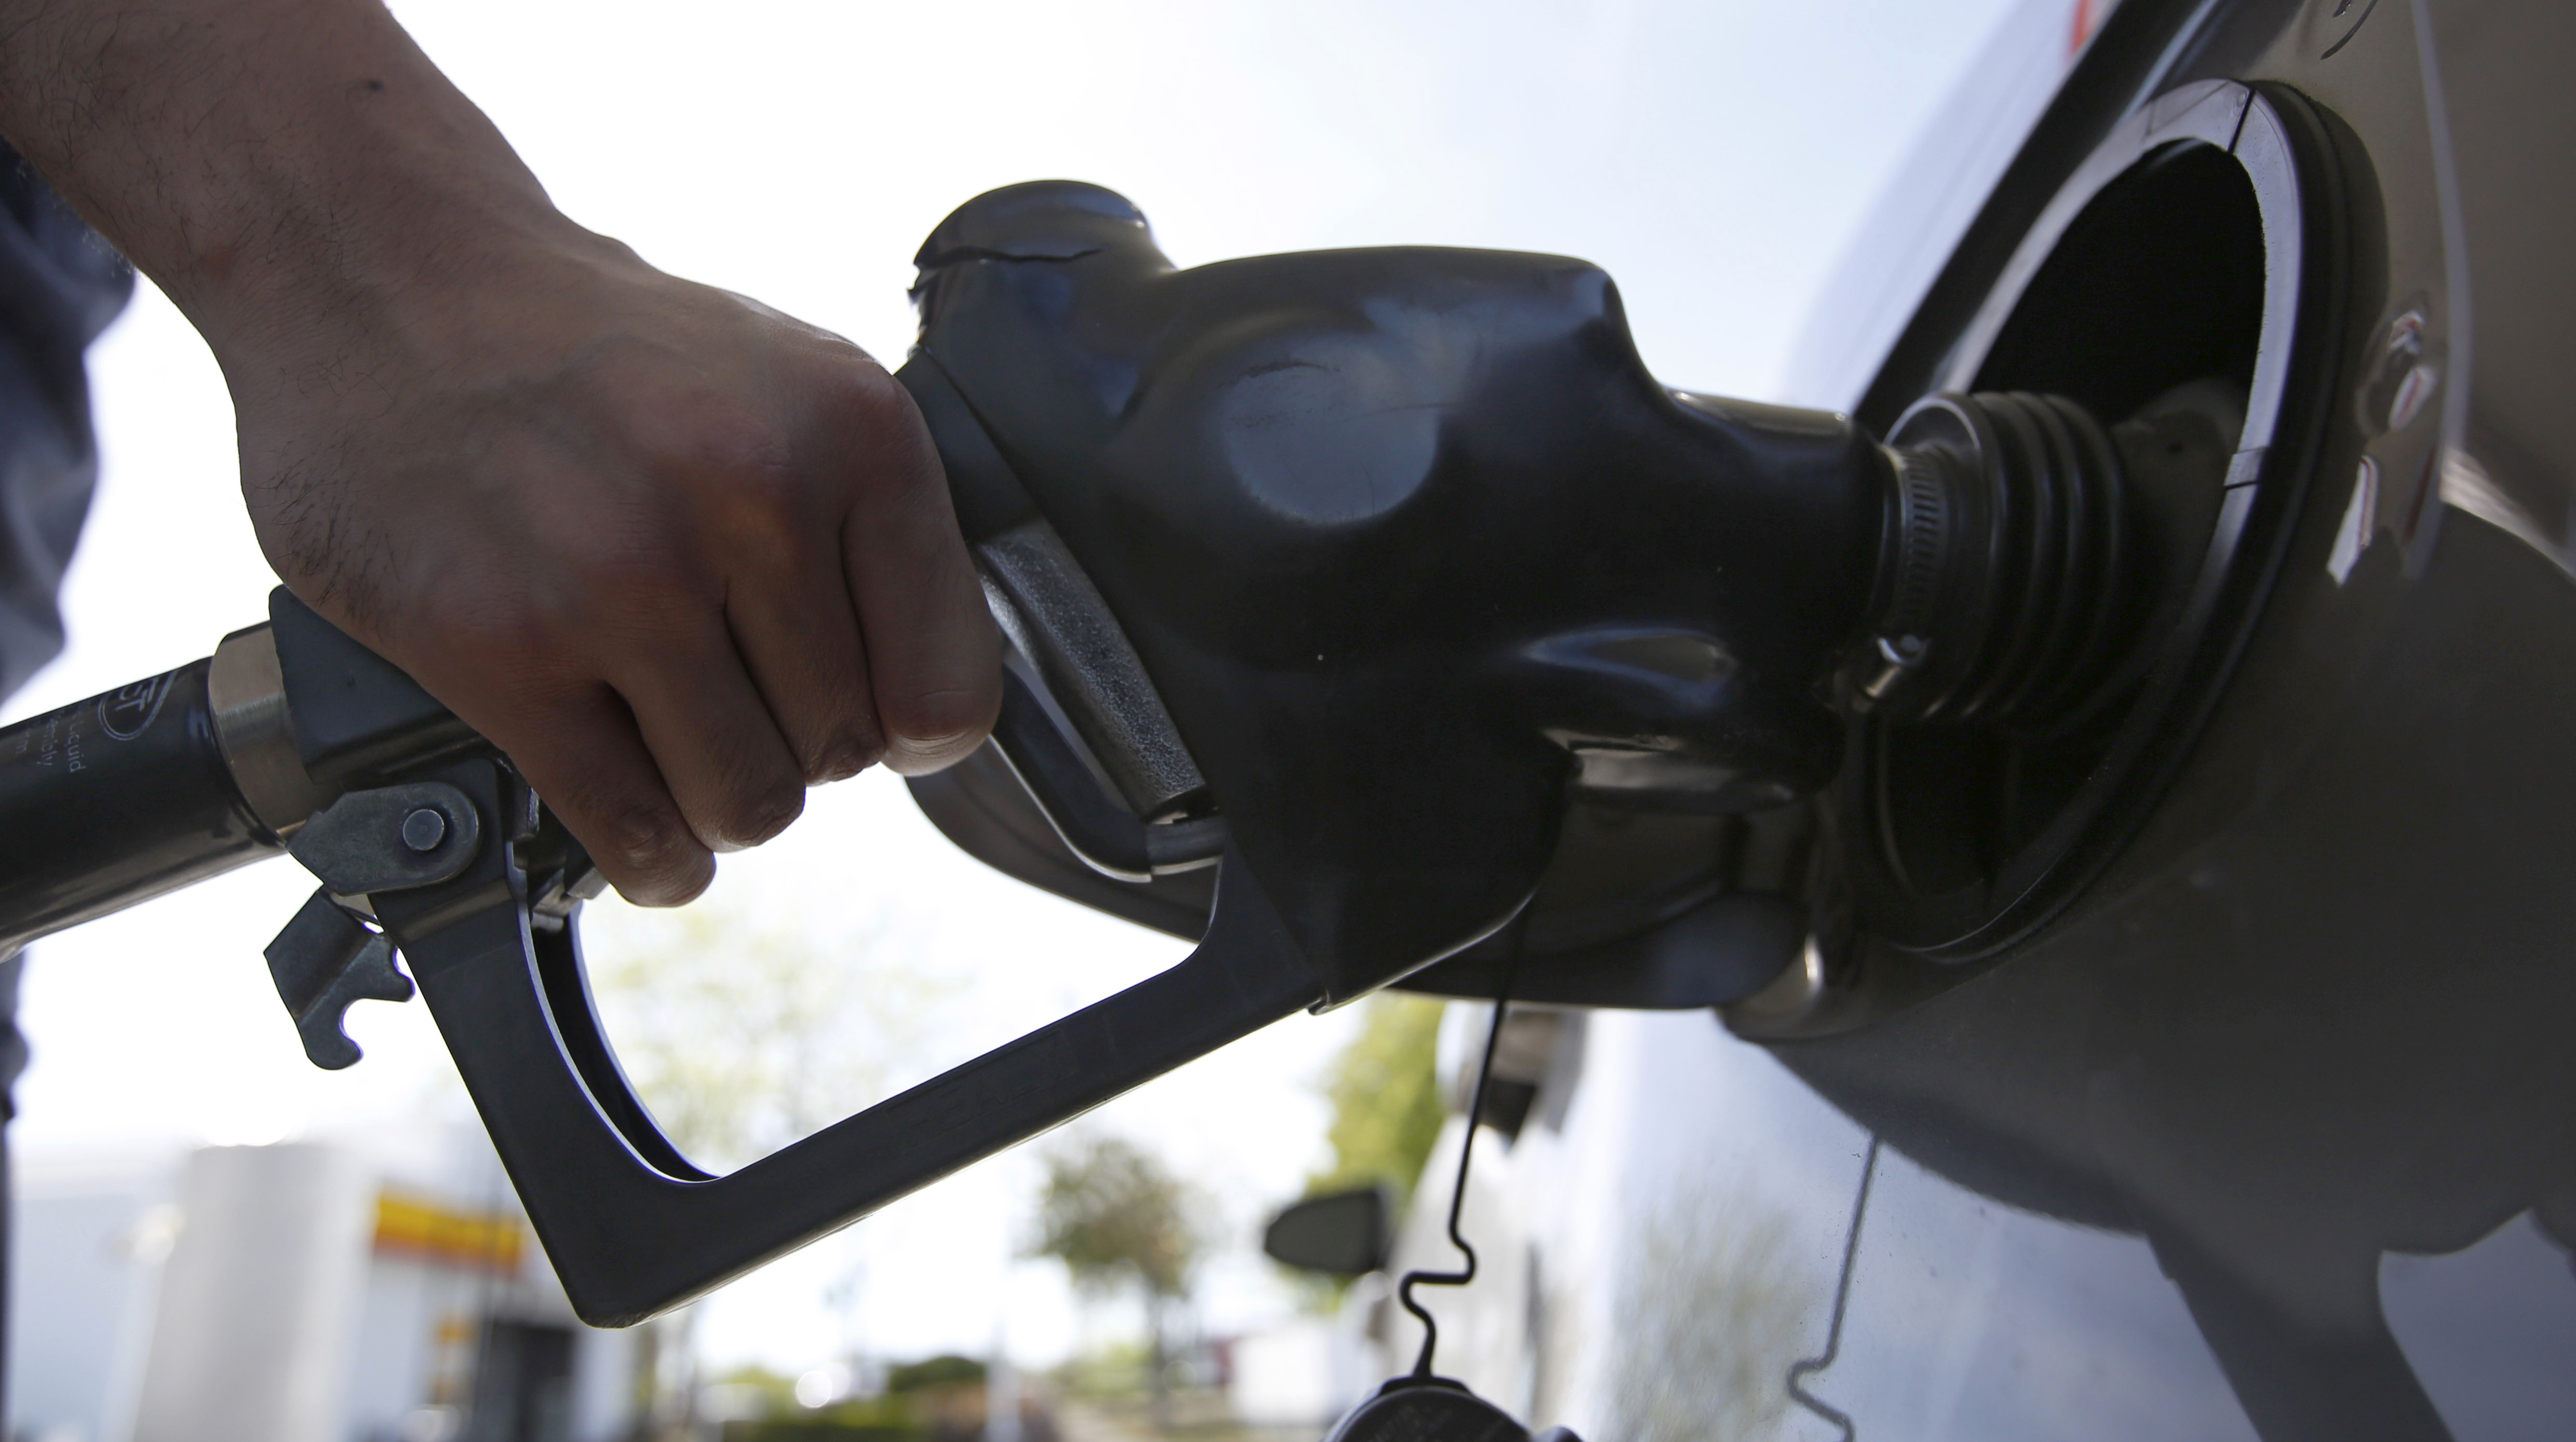 Alabama's new 6-cent gas tax increase kicks in Sept. 1